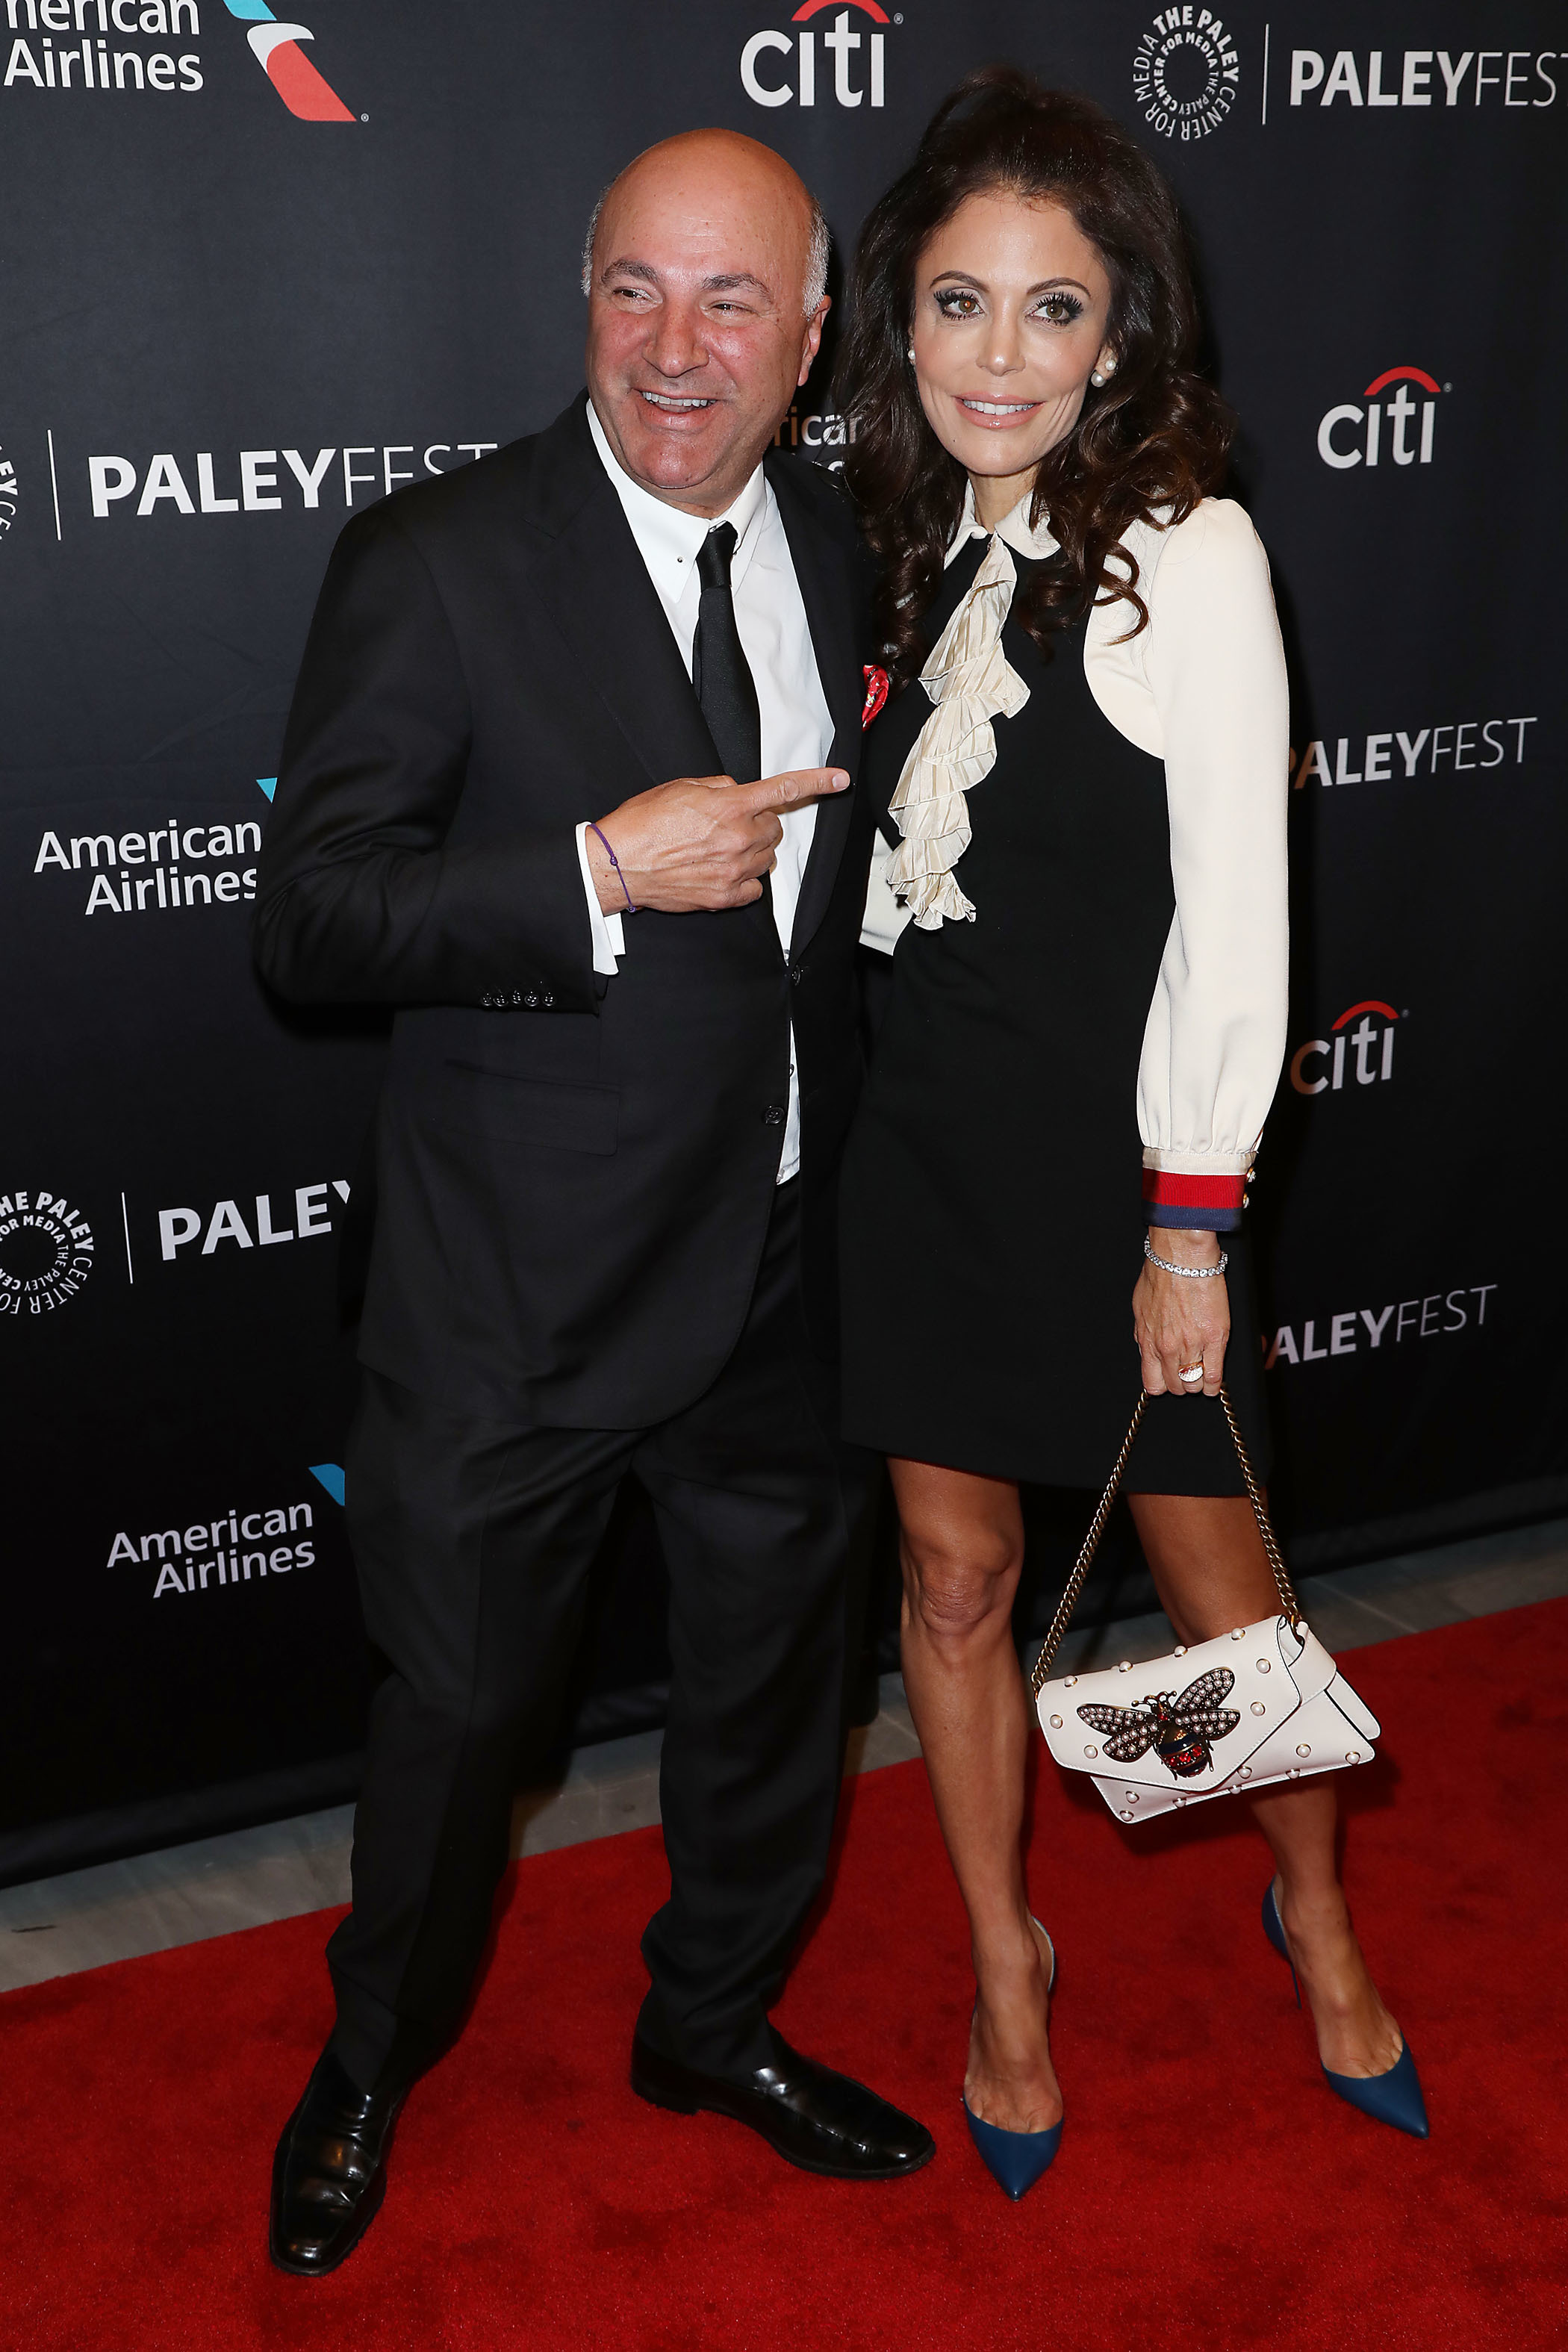 """Kevin O'Leary and Bethenny Frankel attend the PaleyFest panel for """"Shark Tank"""" in New York City on Oct. 14, 2018."""